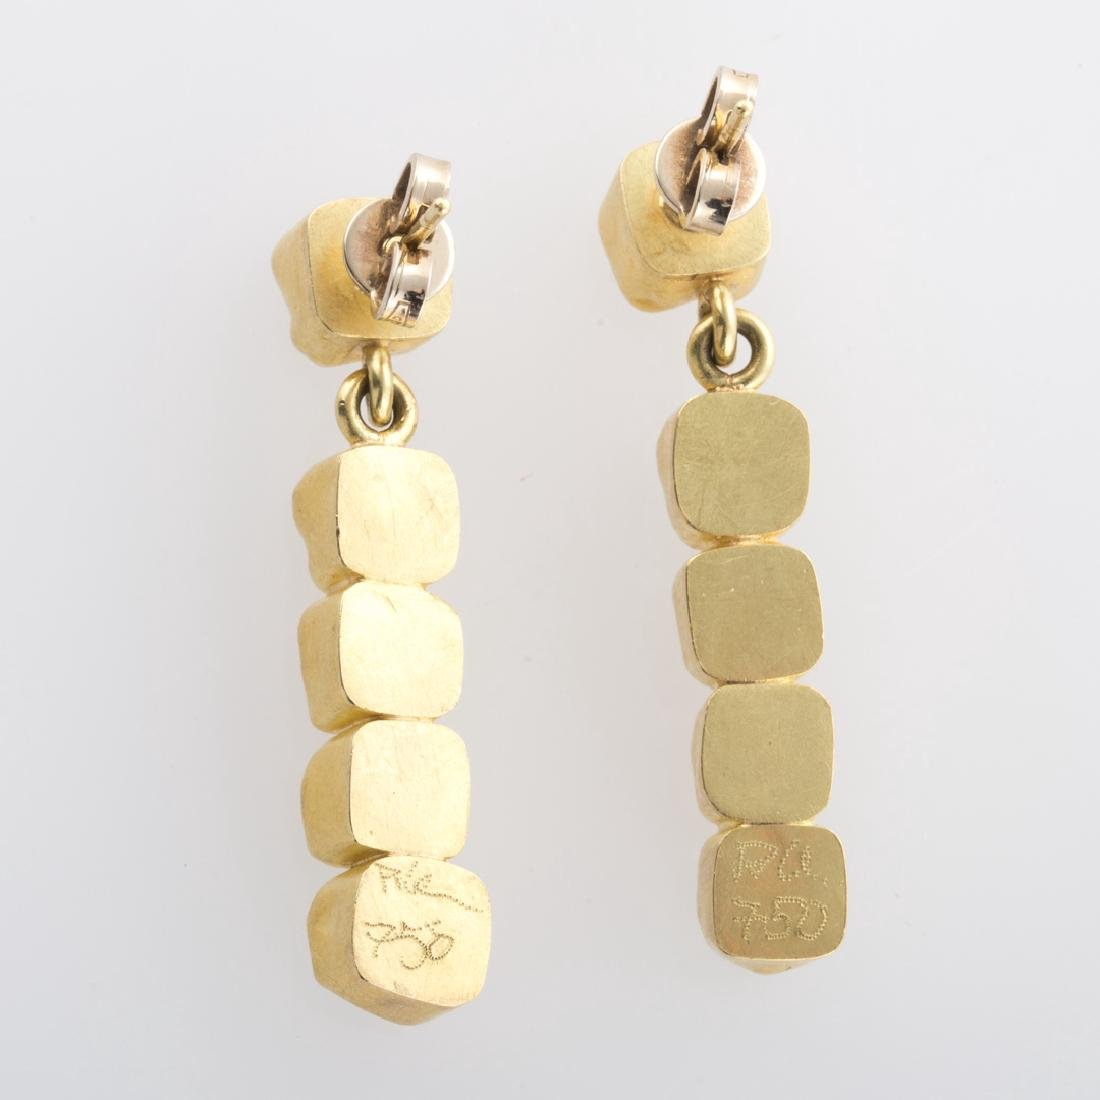 A Pair of Raw, Natural Diamond Earrings in 22K - 3